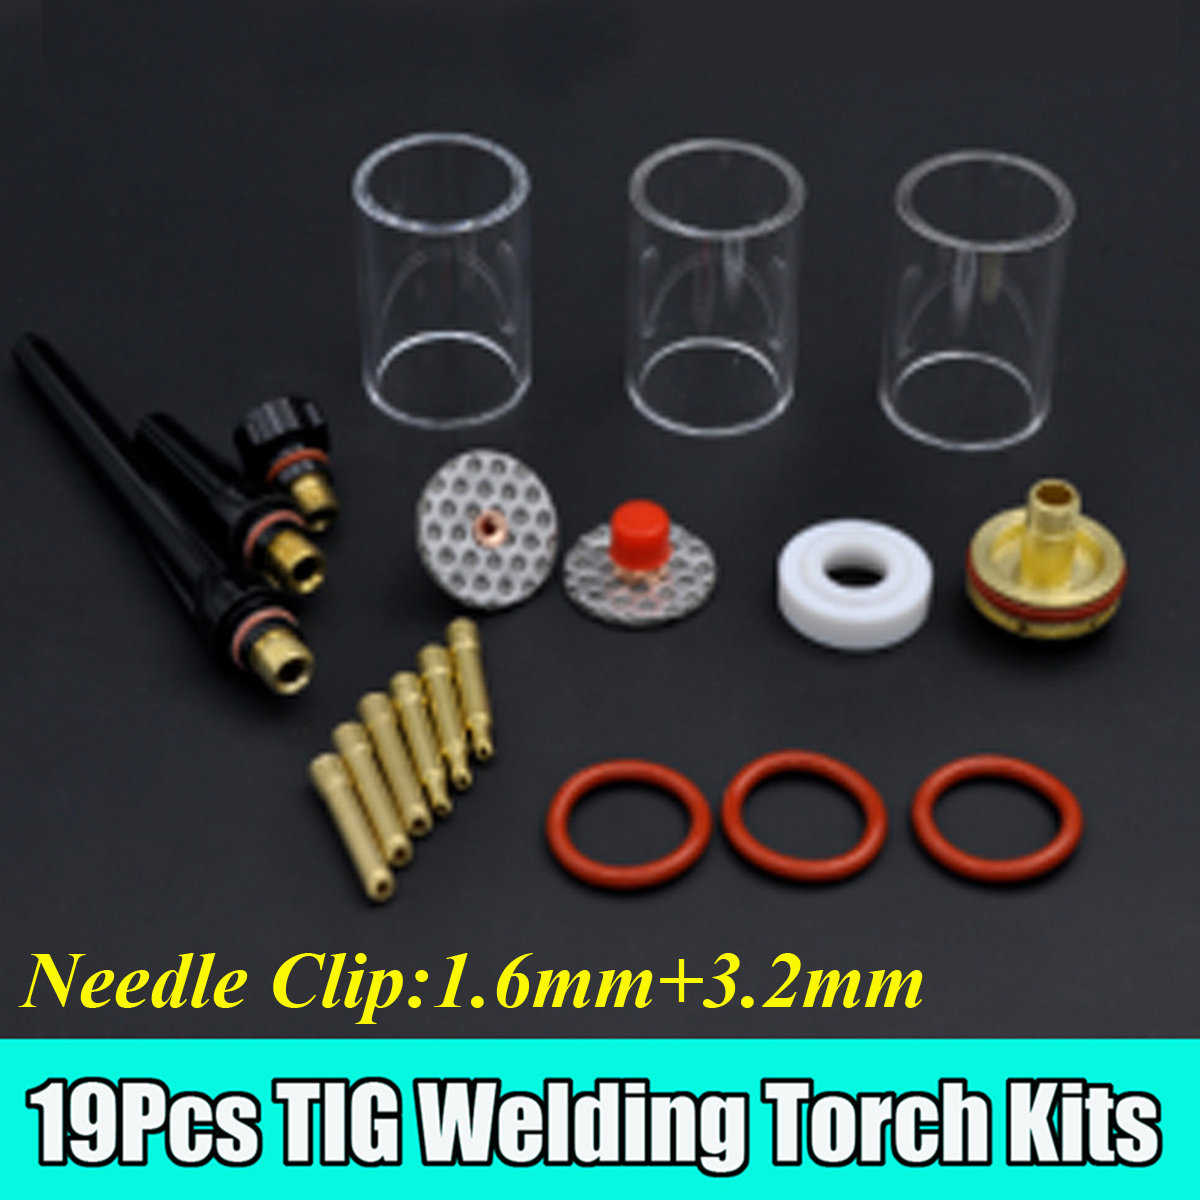 Hot Sale 19Pcs TIG Welding Torch Kit Gas Lens Pyrex Glass Cup for WP-17/18/26 Series Welding Accessories tig 26 wp 26 wp26 wp 26 tig 26 tig welding torch dinse connection quick connector gas electric seperated 4m